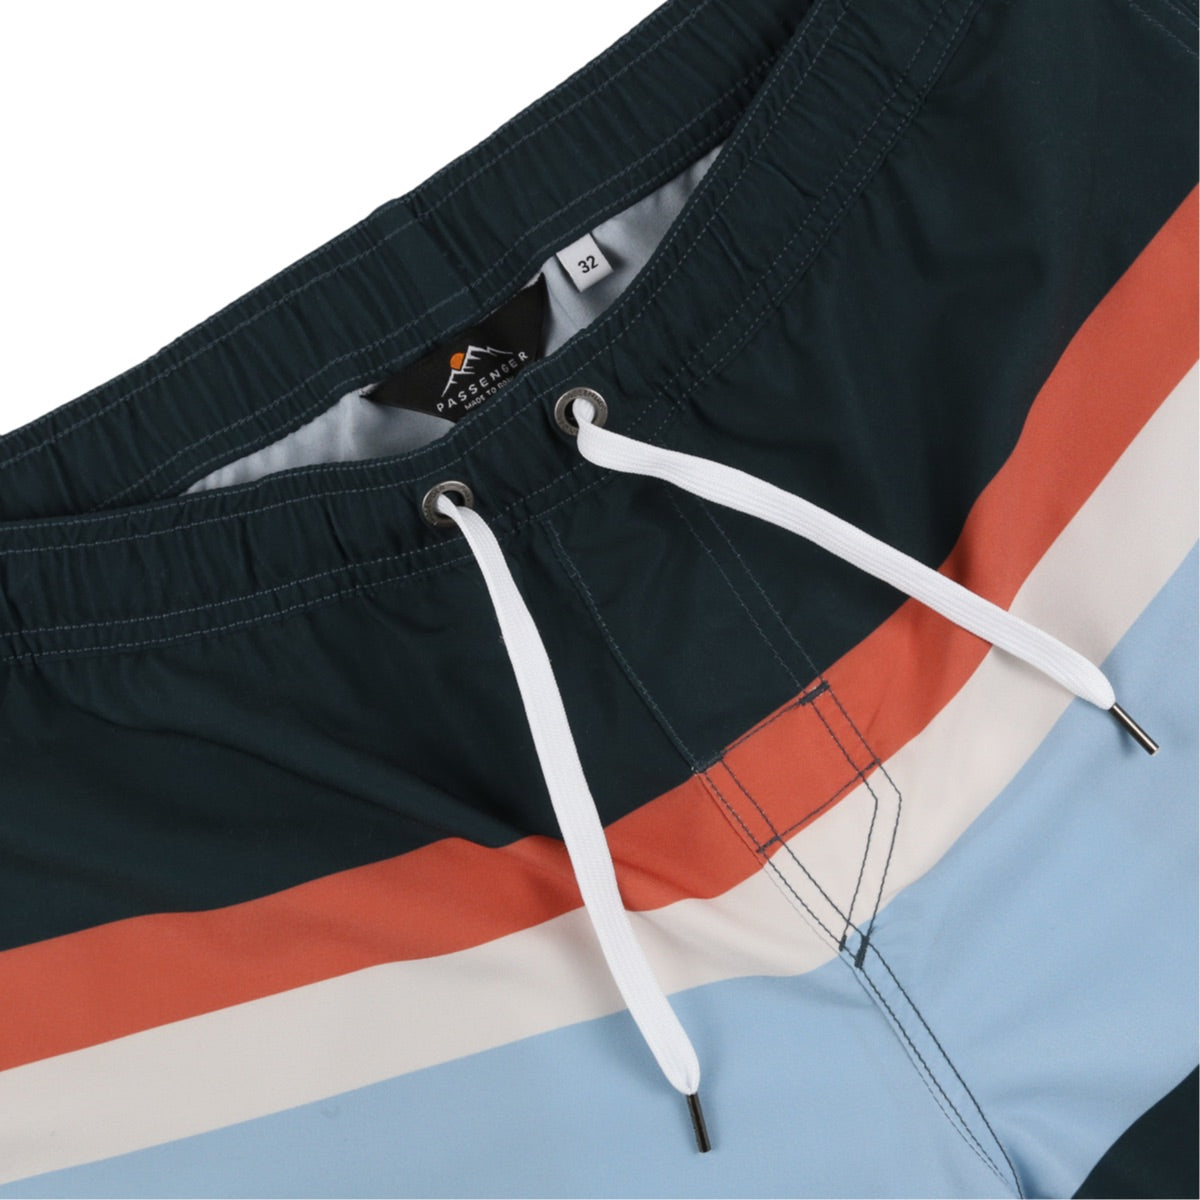 Lineup Hybrid Shorts - Dark Grey image 3